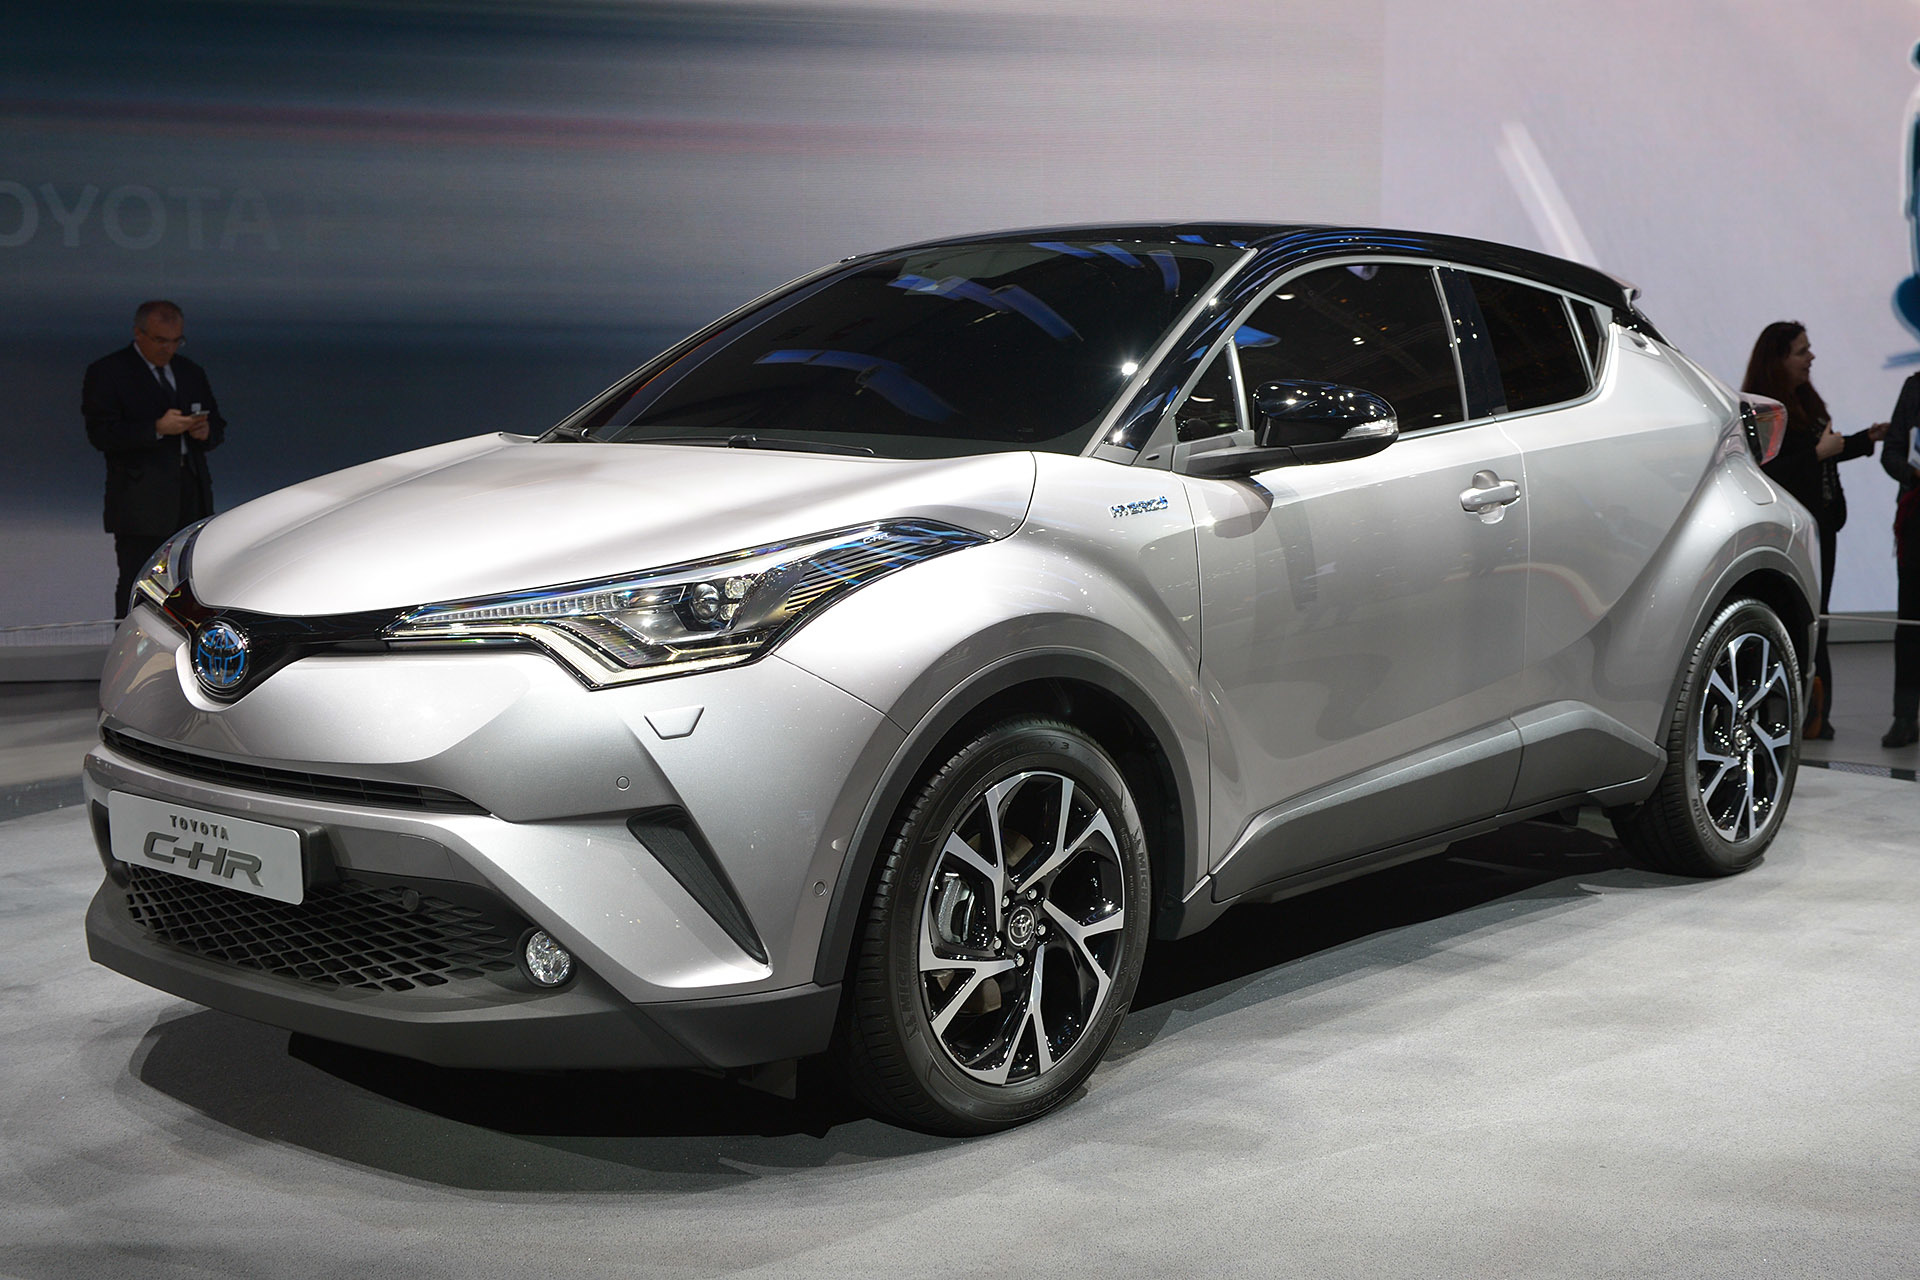 Toyota's Vezel Fighter 'C-HR' Will Be Available With A 1